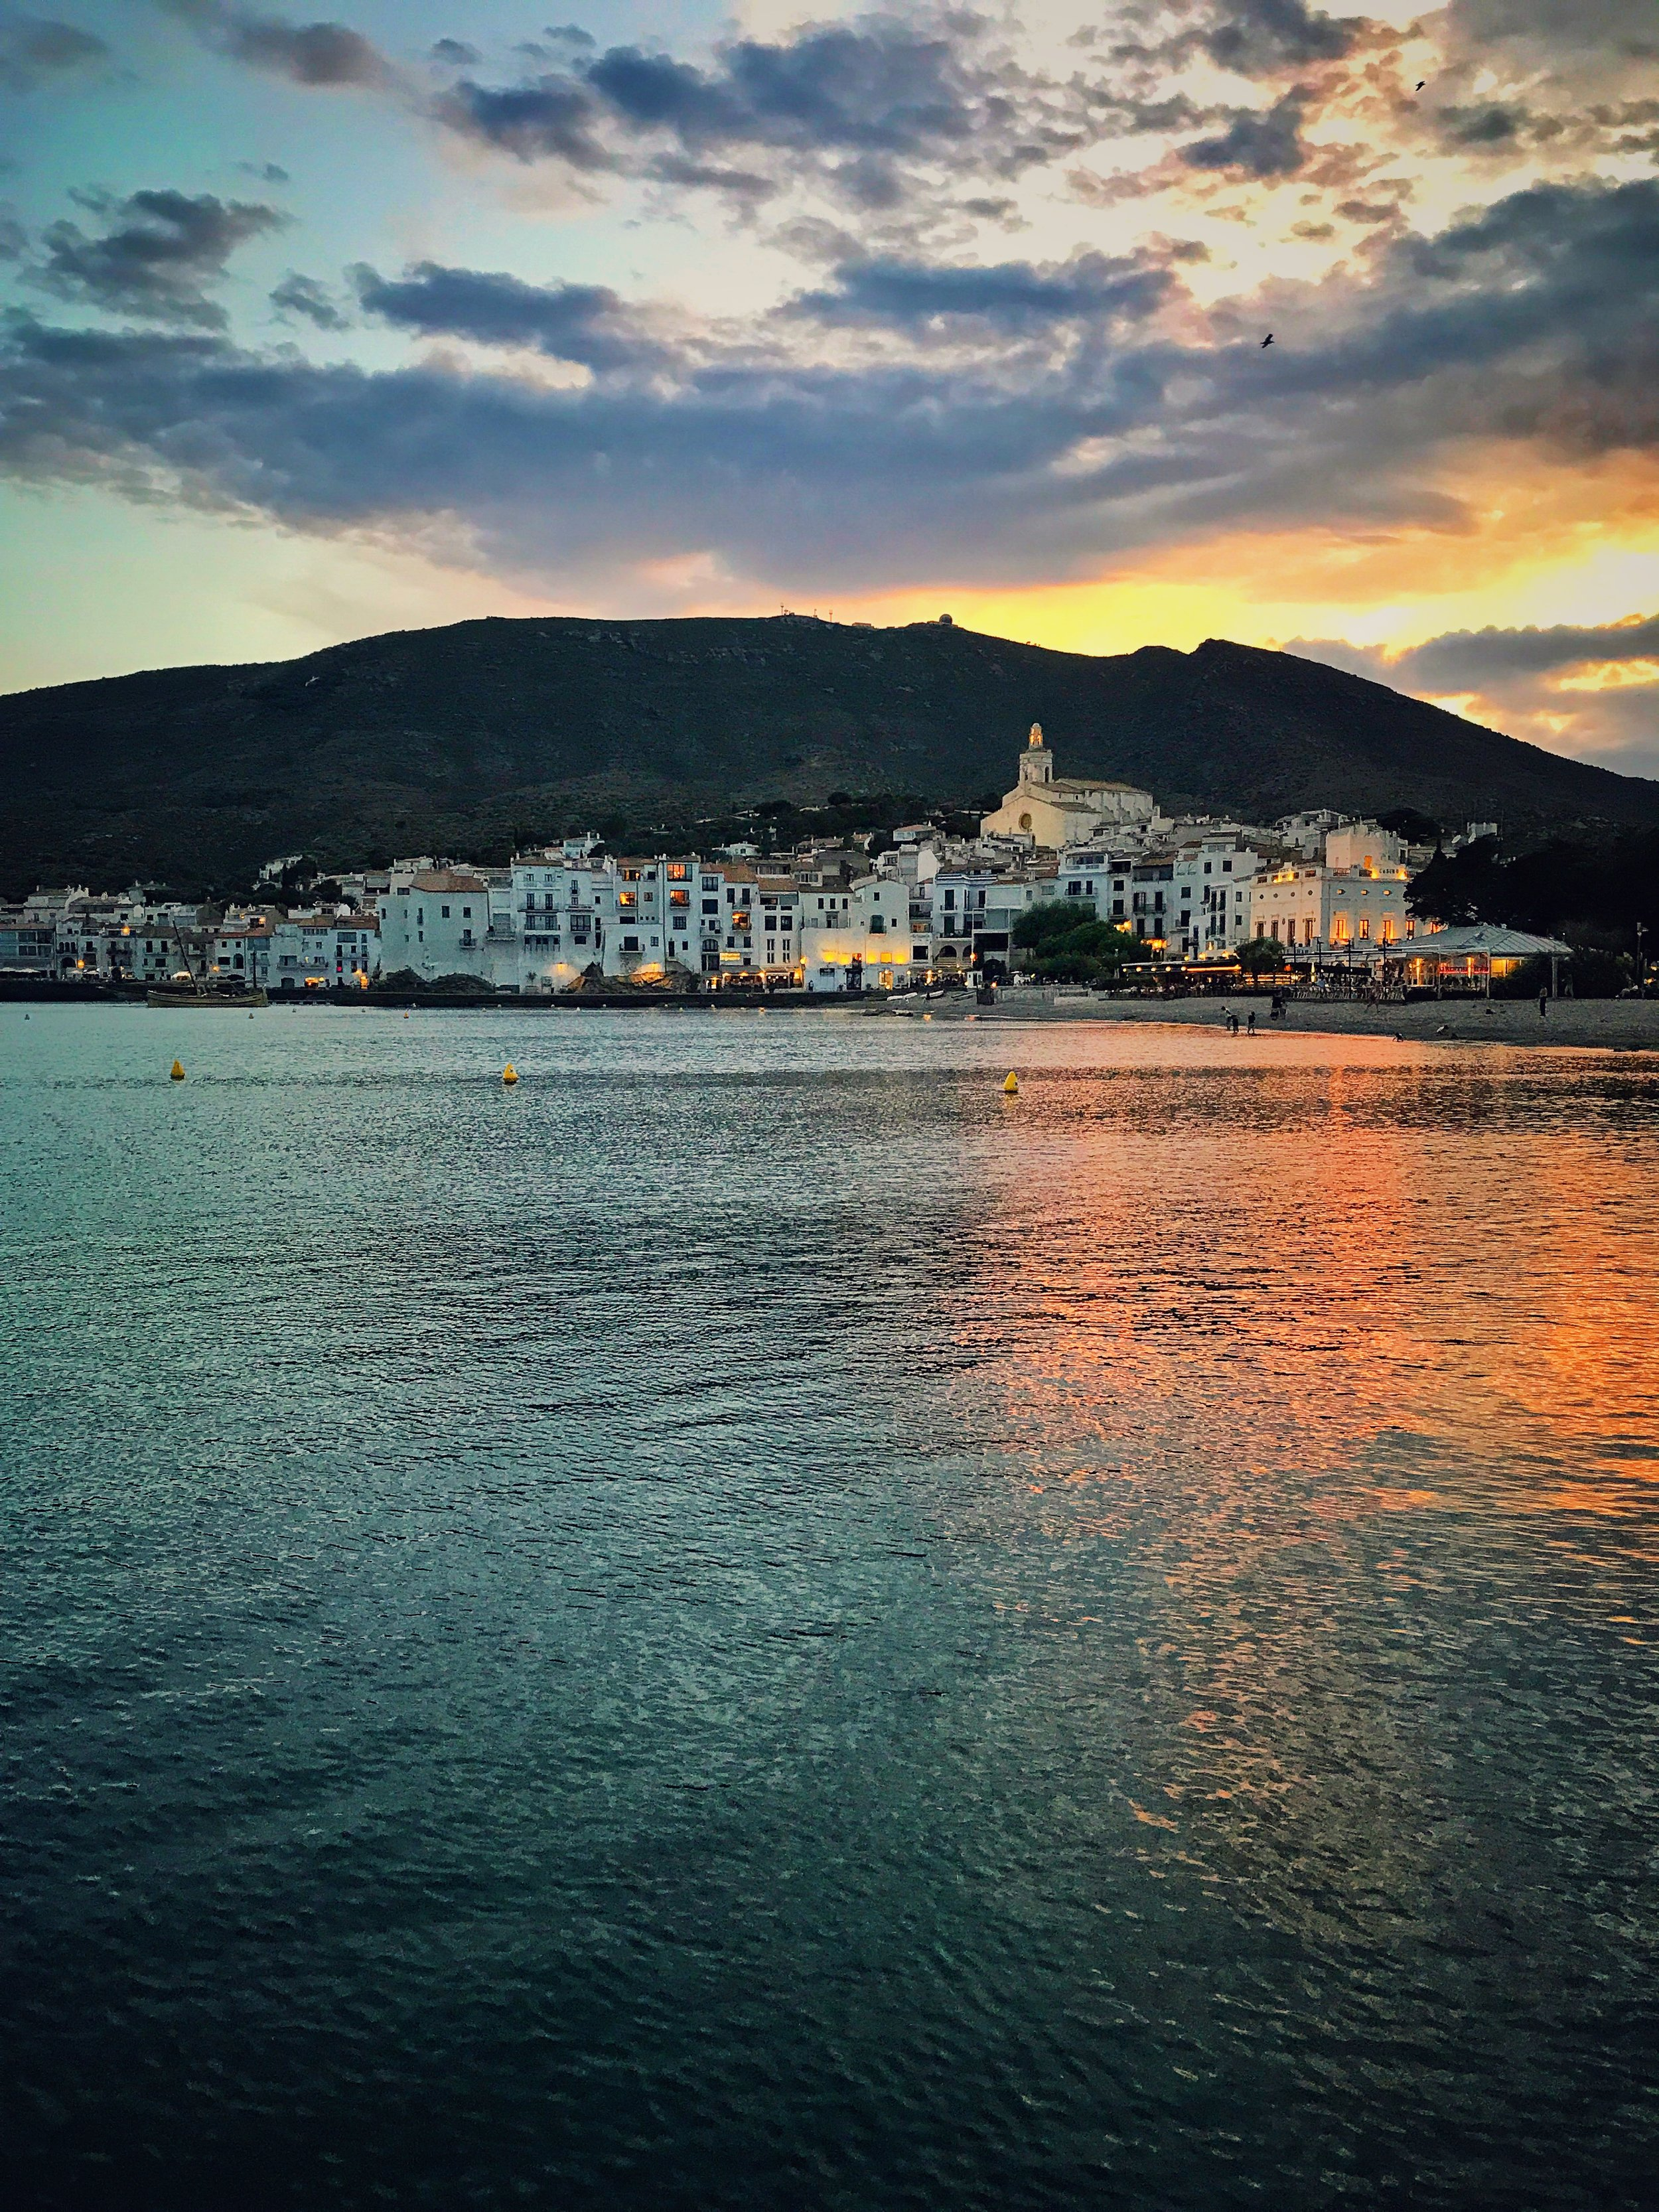 Cadaques at sunset as seen from a favorite place to swim.